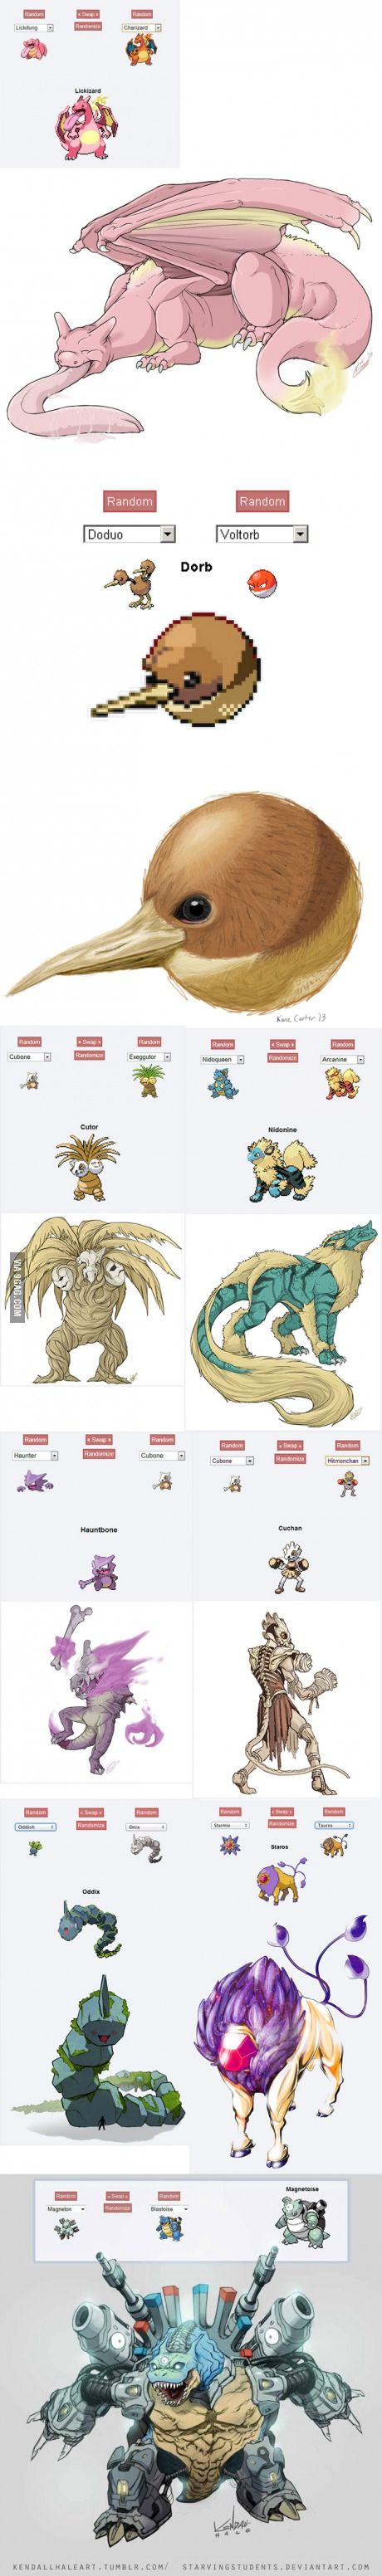 Pokemon Fusion Art (x-post to r/pokemon) - http://geekstumbles.com/funny/pokemon-fusion-art-x-post-to-rpokemon/